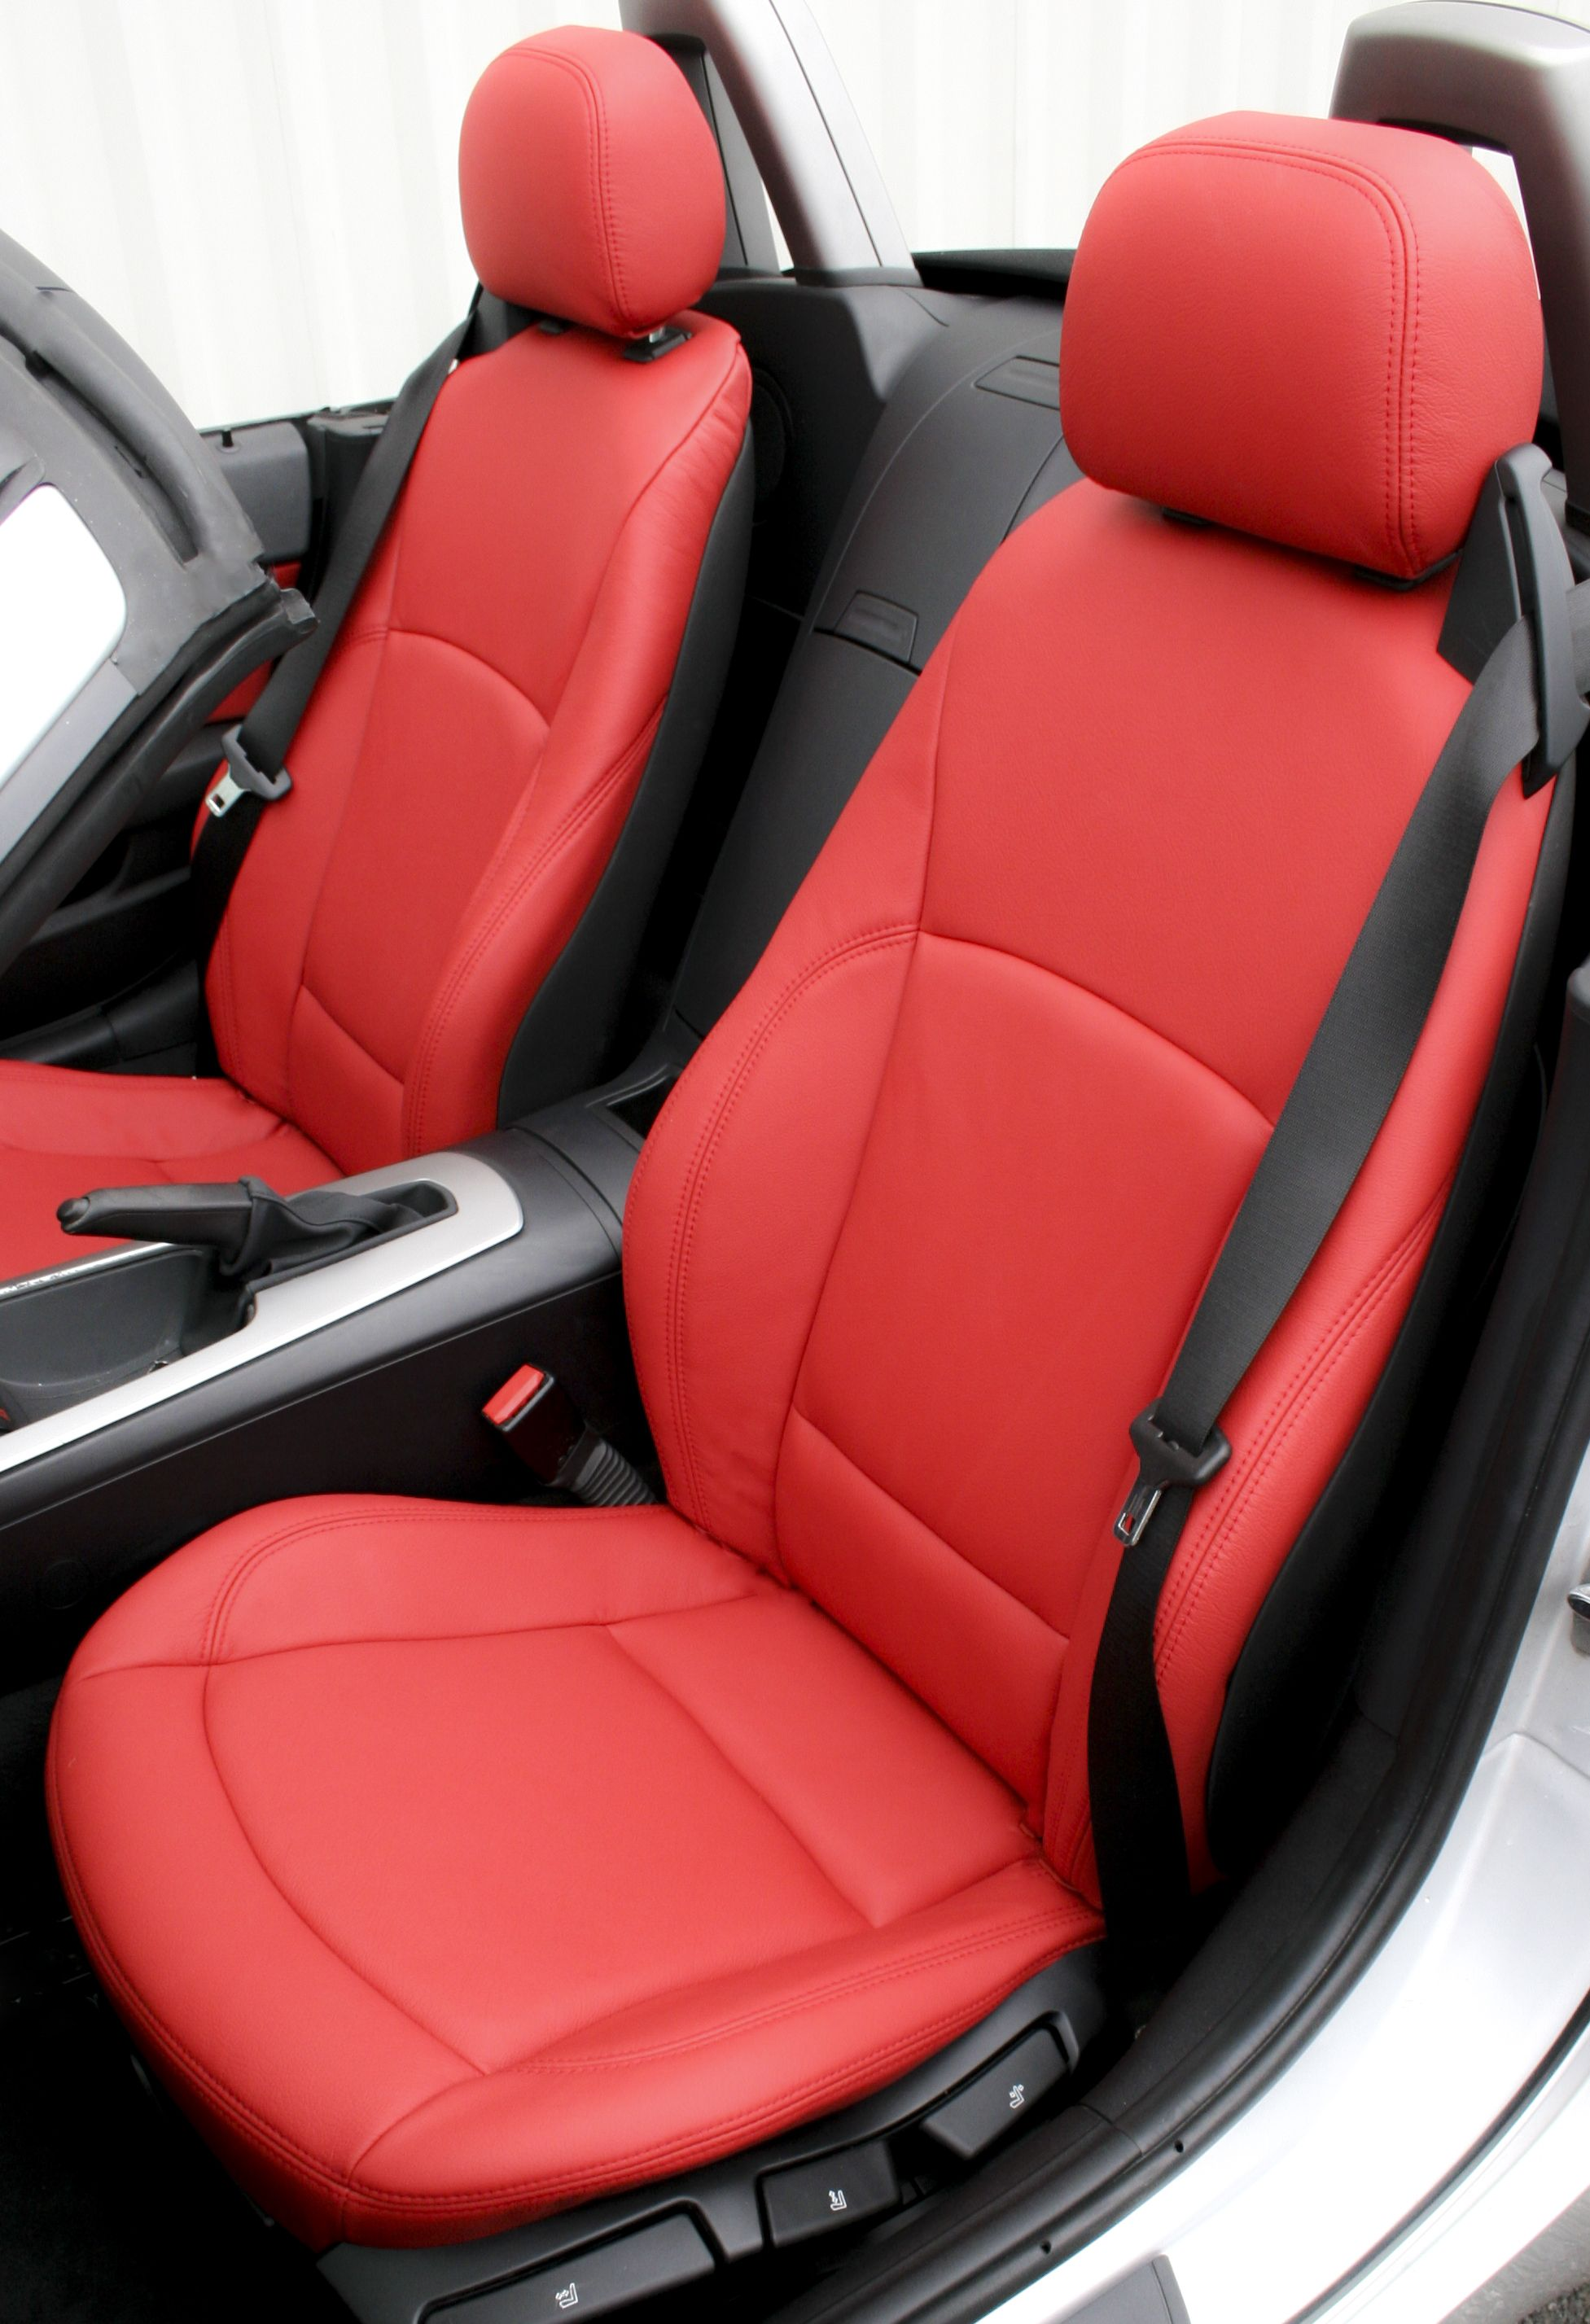 A Bmw Z4 Roadster With Red Leather Seats Designed Manufactured